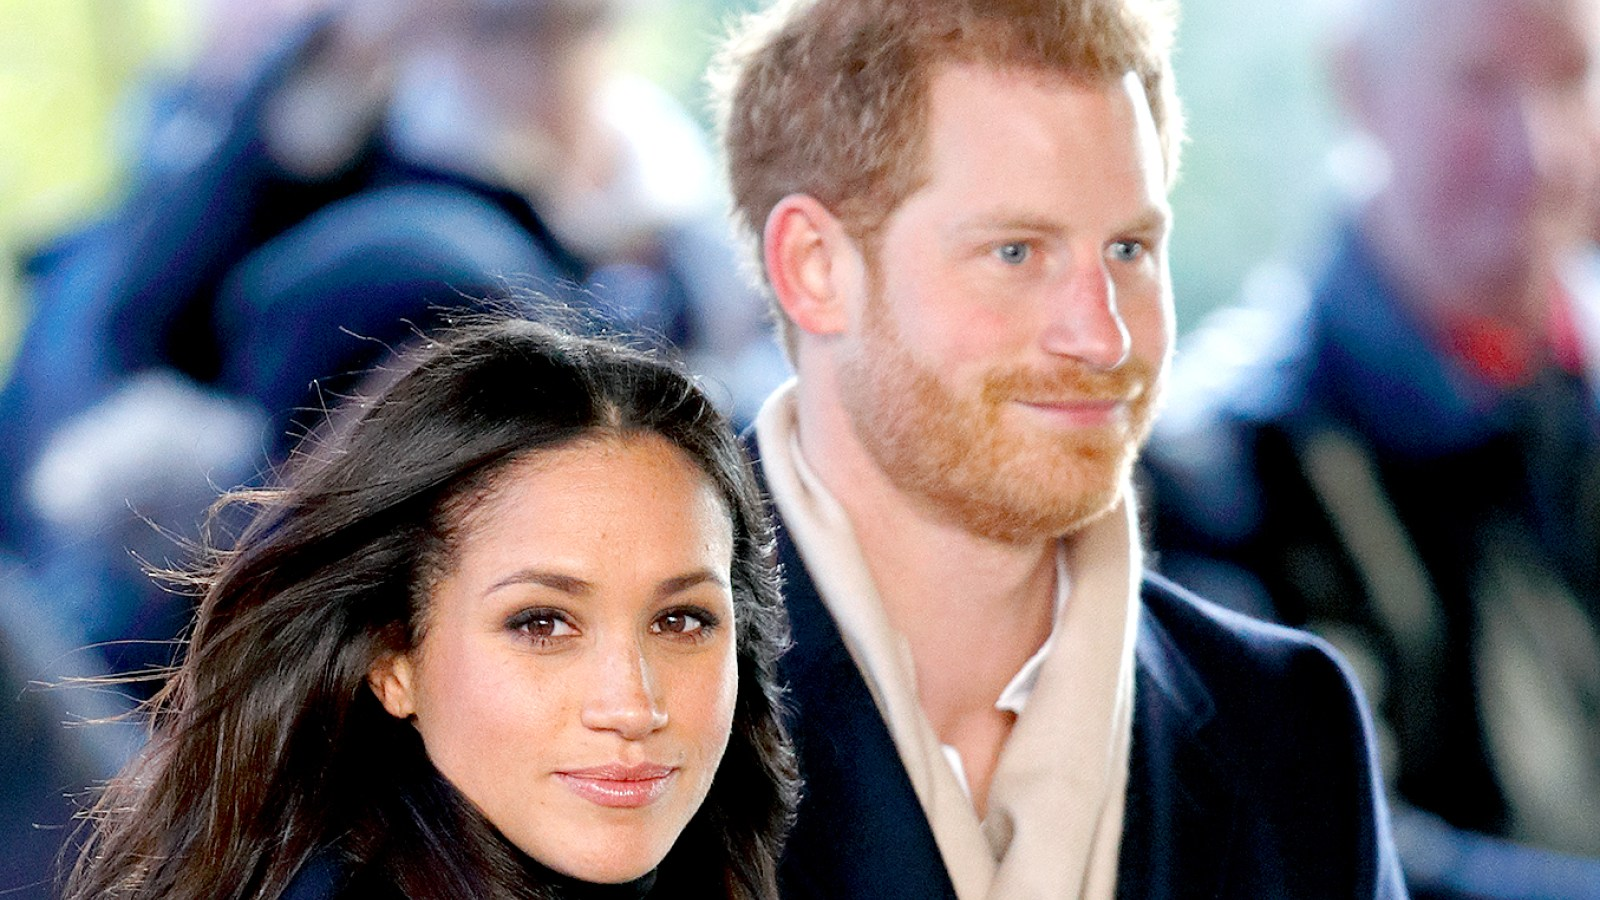 Meghan Markle Was Just One Short Step Away From Becoming